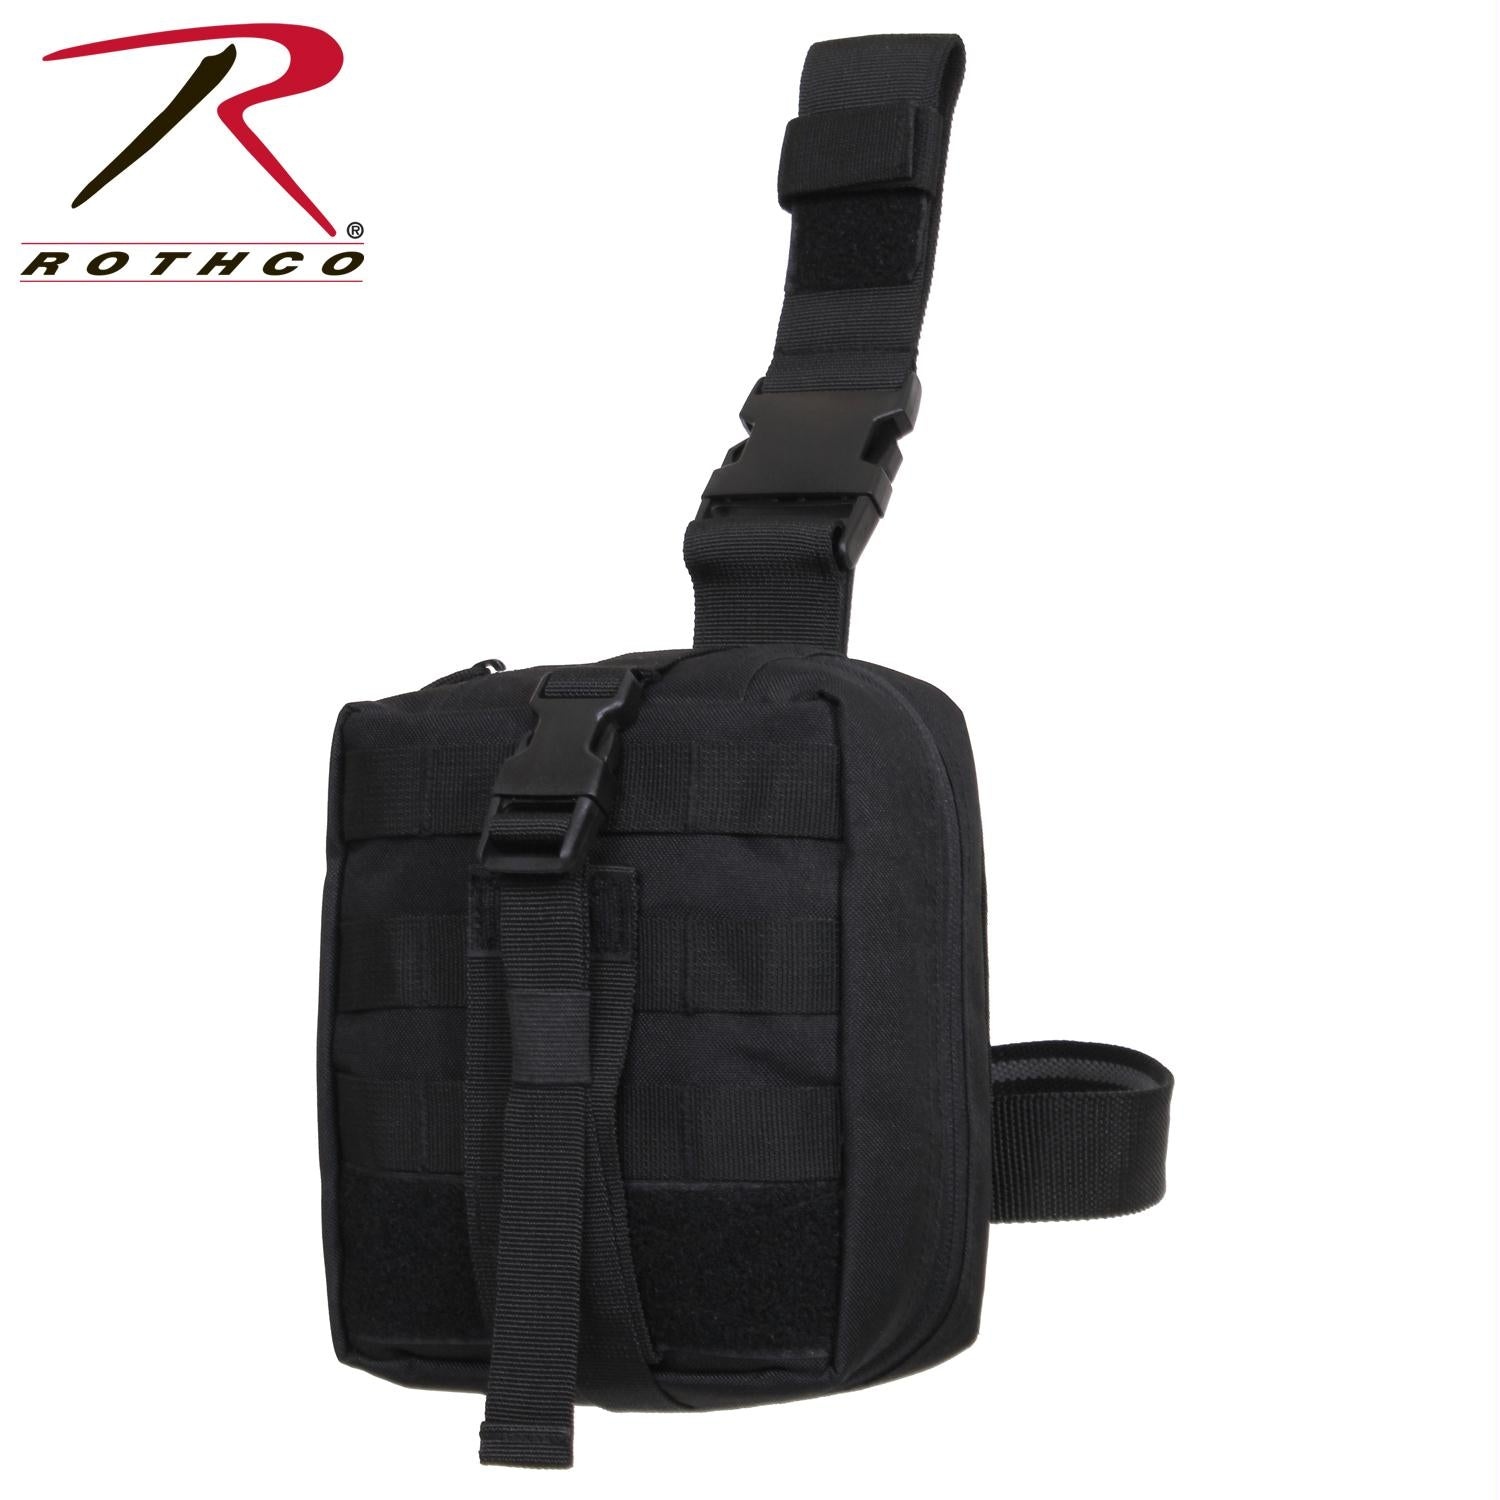 Rothco Drop Leg Medical Pouch - Black